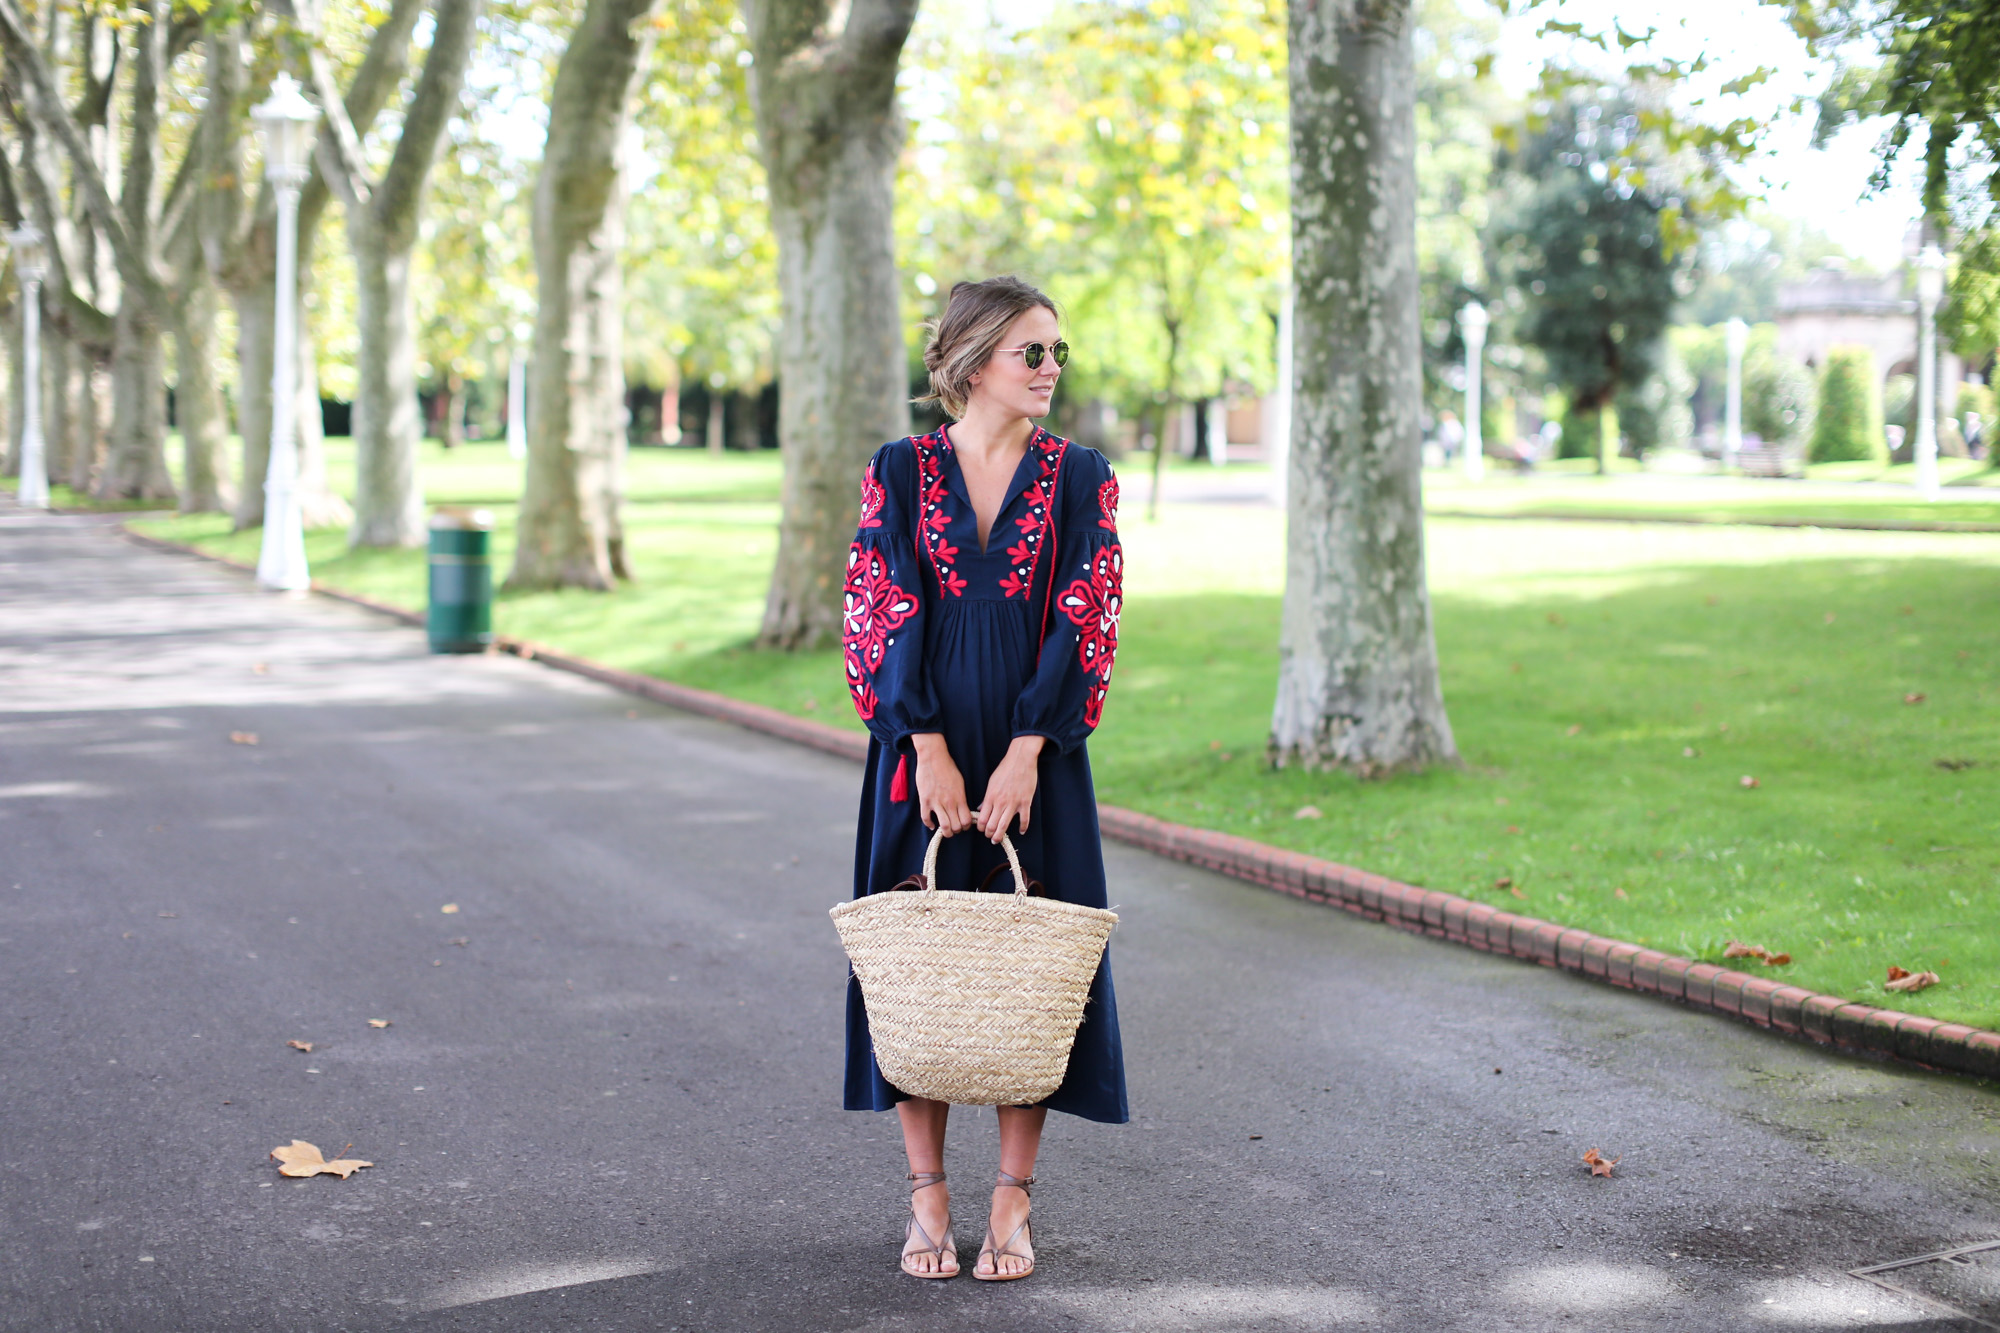 Clochet_streetstyle_fashionblogger_bilbao_zara_embroided_traditional_dress_strawbag-4